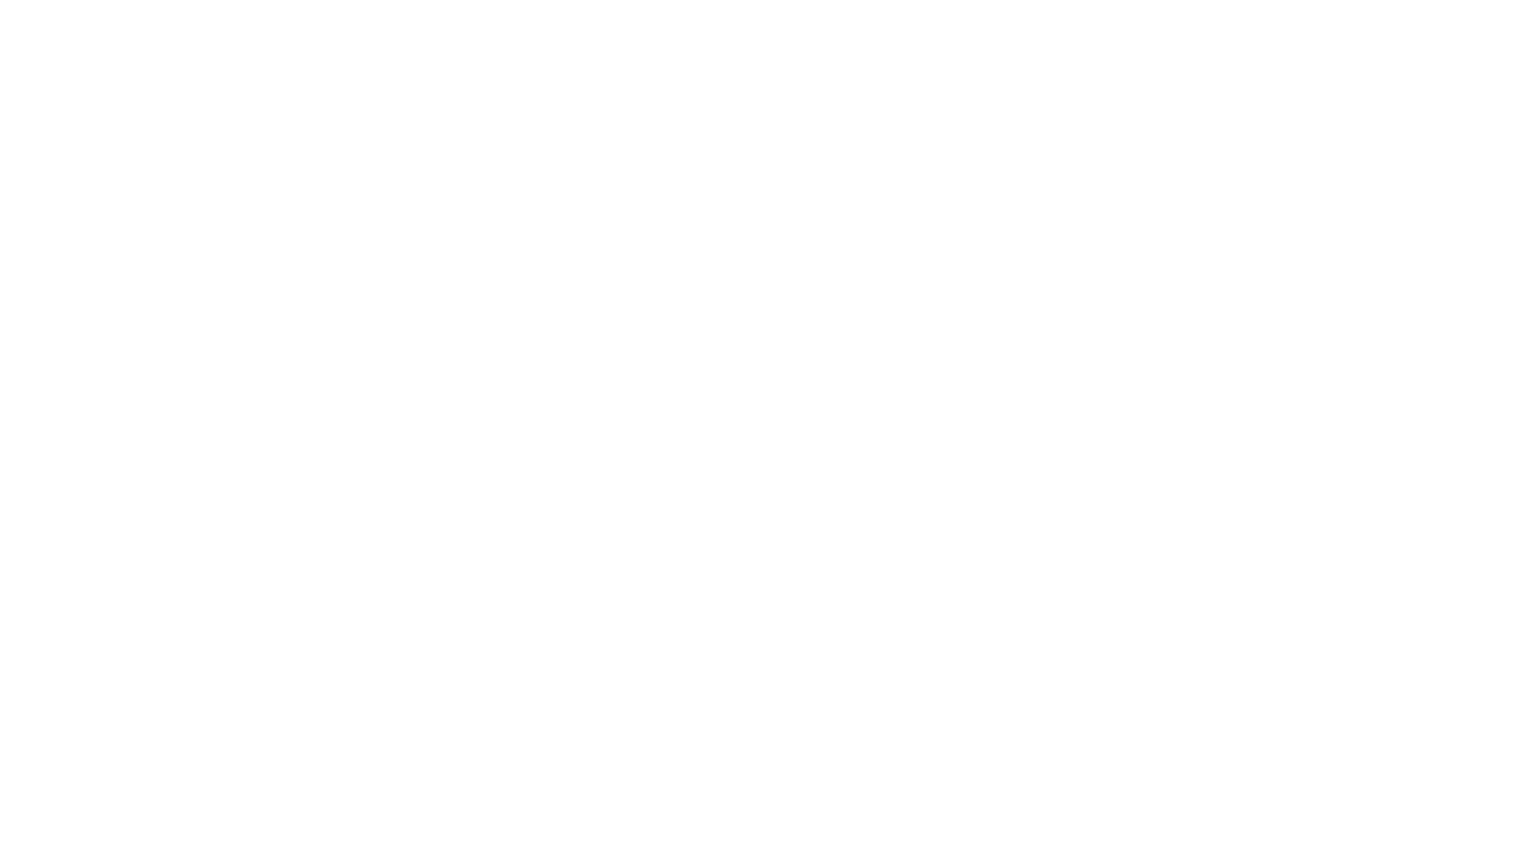 THE SHOW 2020